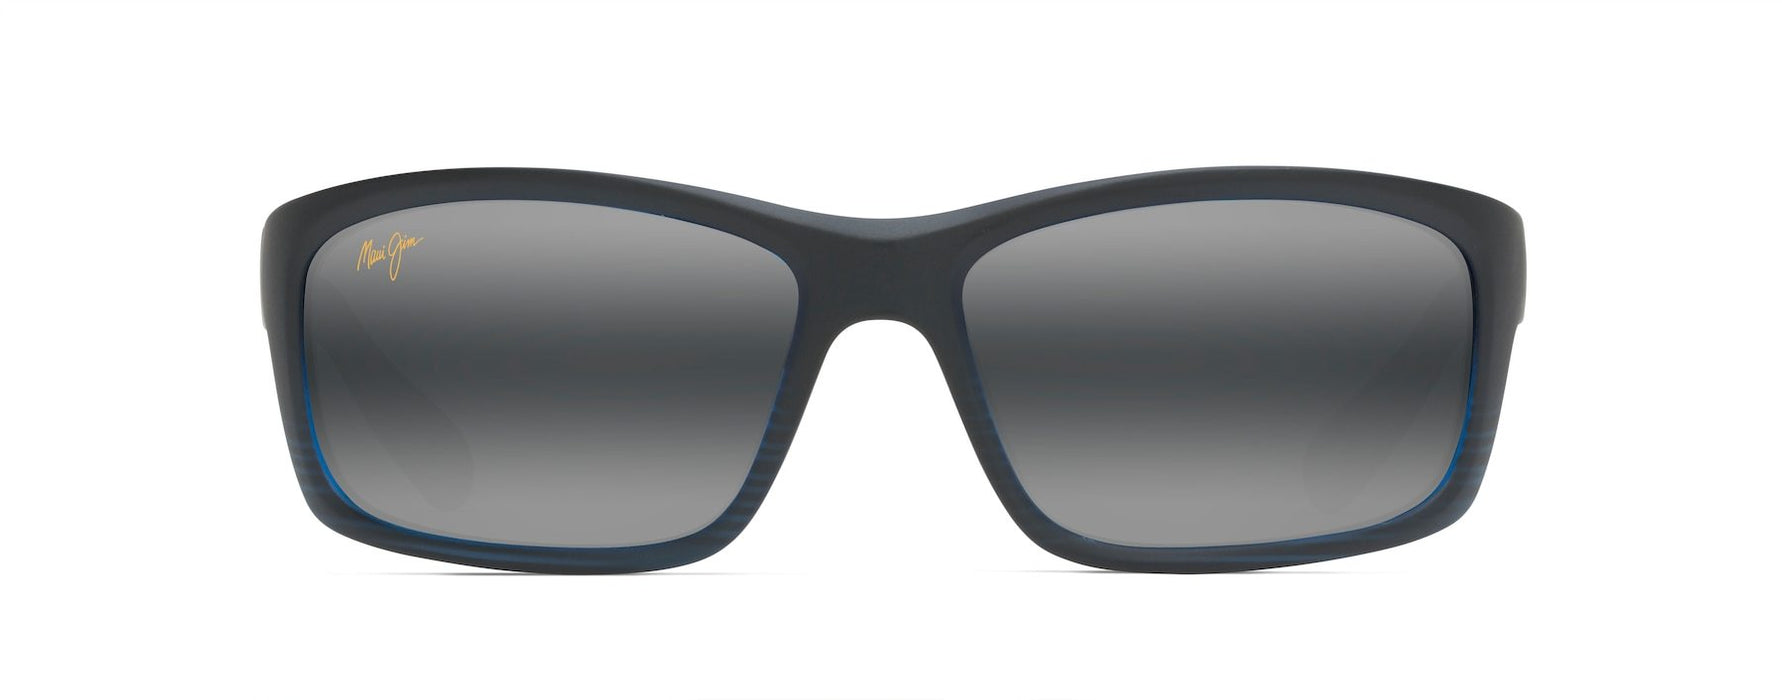 MyMaui Kanaio Coast MM766-014 Sunglasses